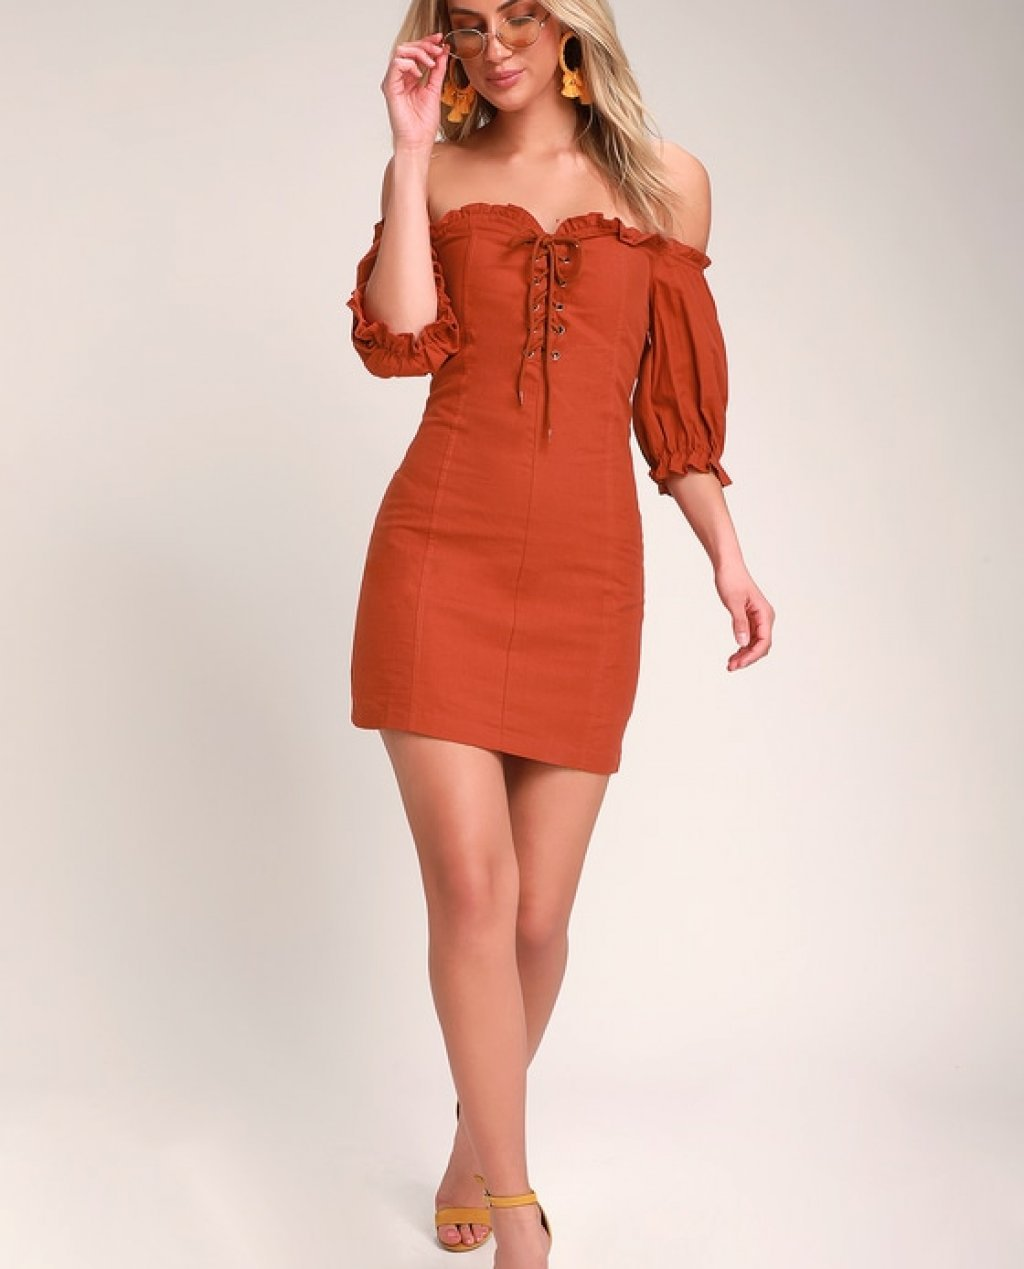 See Ya Later Terra Cotta Off-the-Shoulder Lace-Up Dress